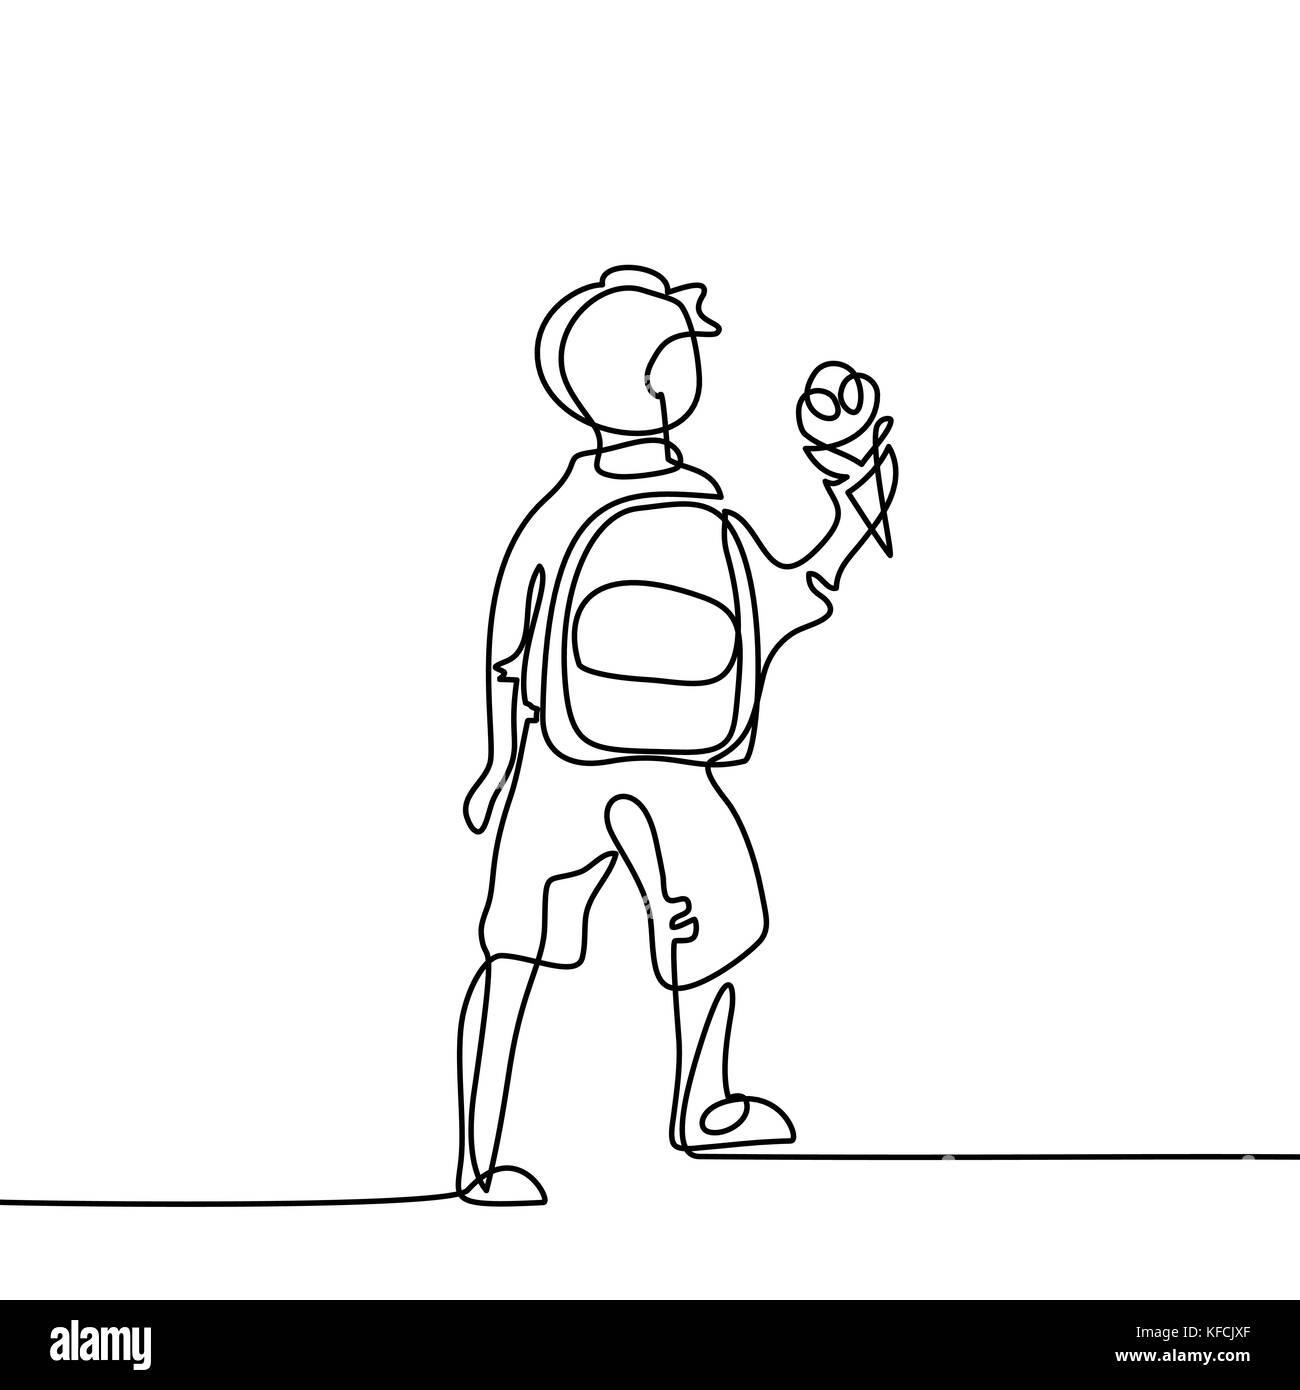 Bag School Pupil Outline Imágenes De Stock & Bag School Pupil ...